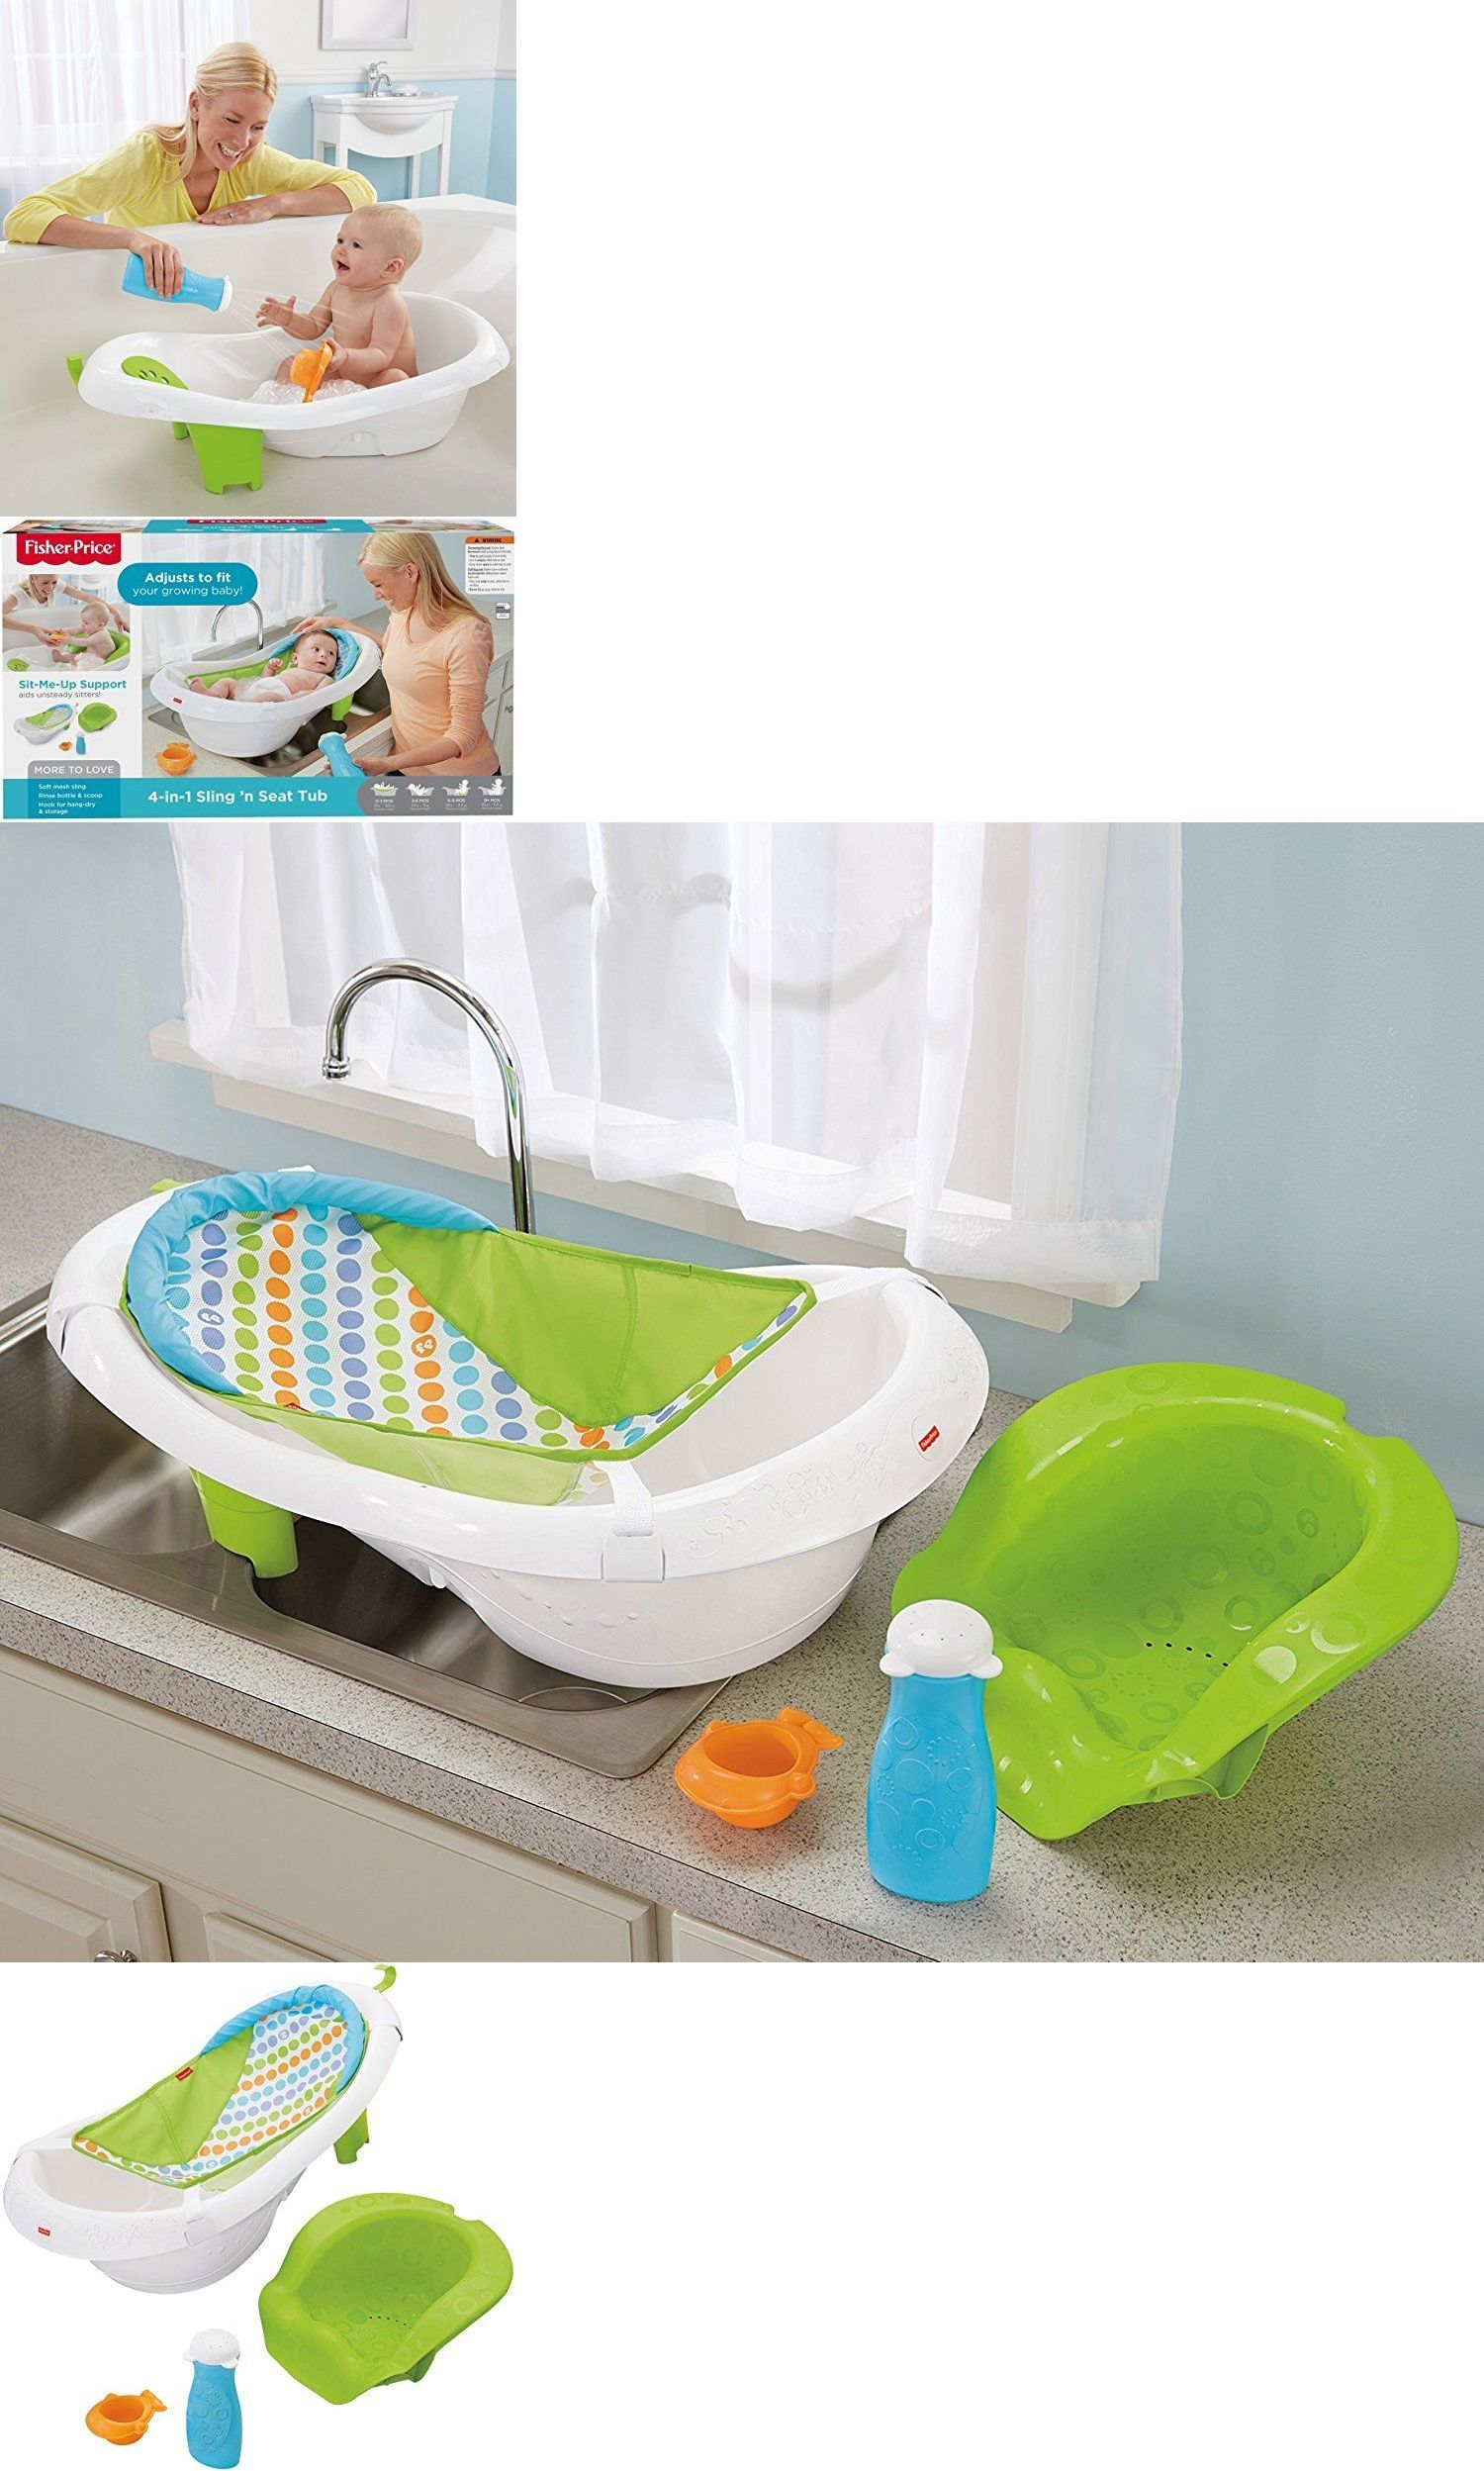 Bath Tub Seats and Rings 162024: Fisher Price 4-In-1 Sling N Seat ...